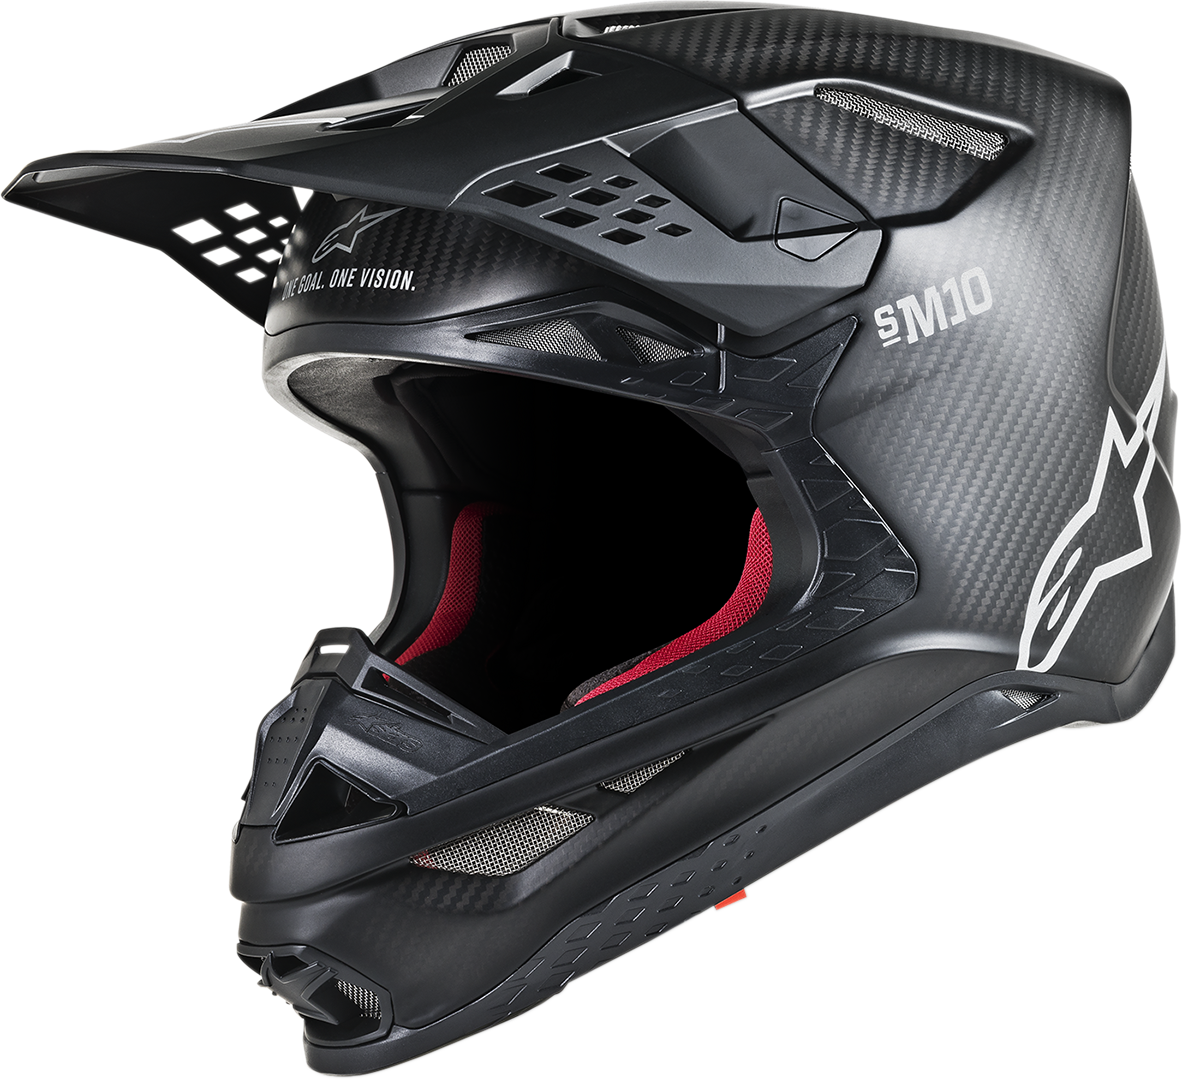 Alpinestars Supertech M10 Unisex Offroad Riding Dirt Bike Atv Utv Racing Helmet